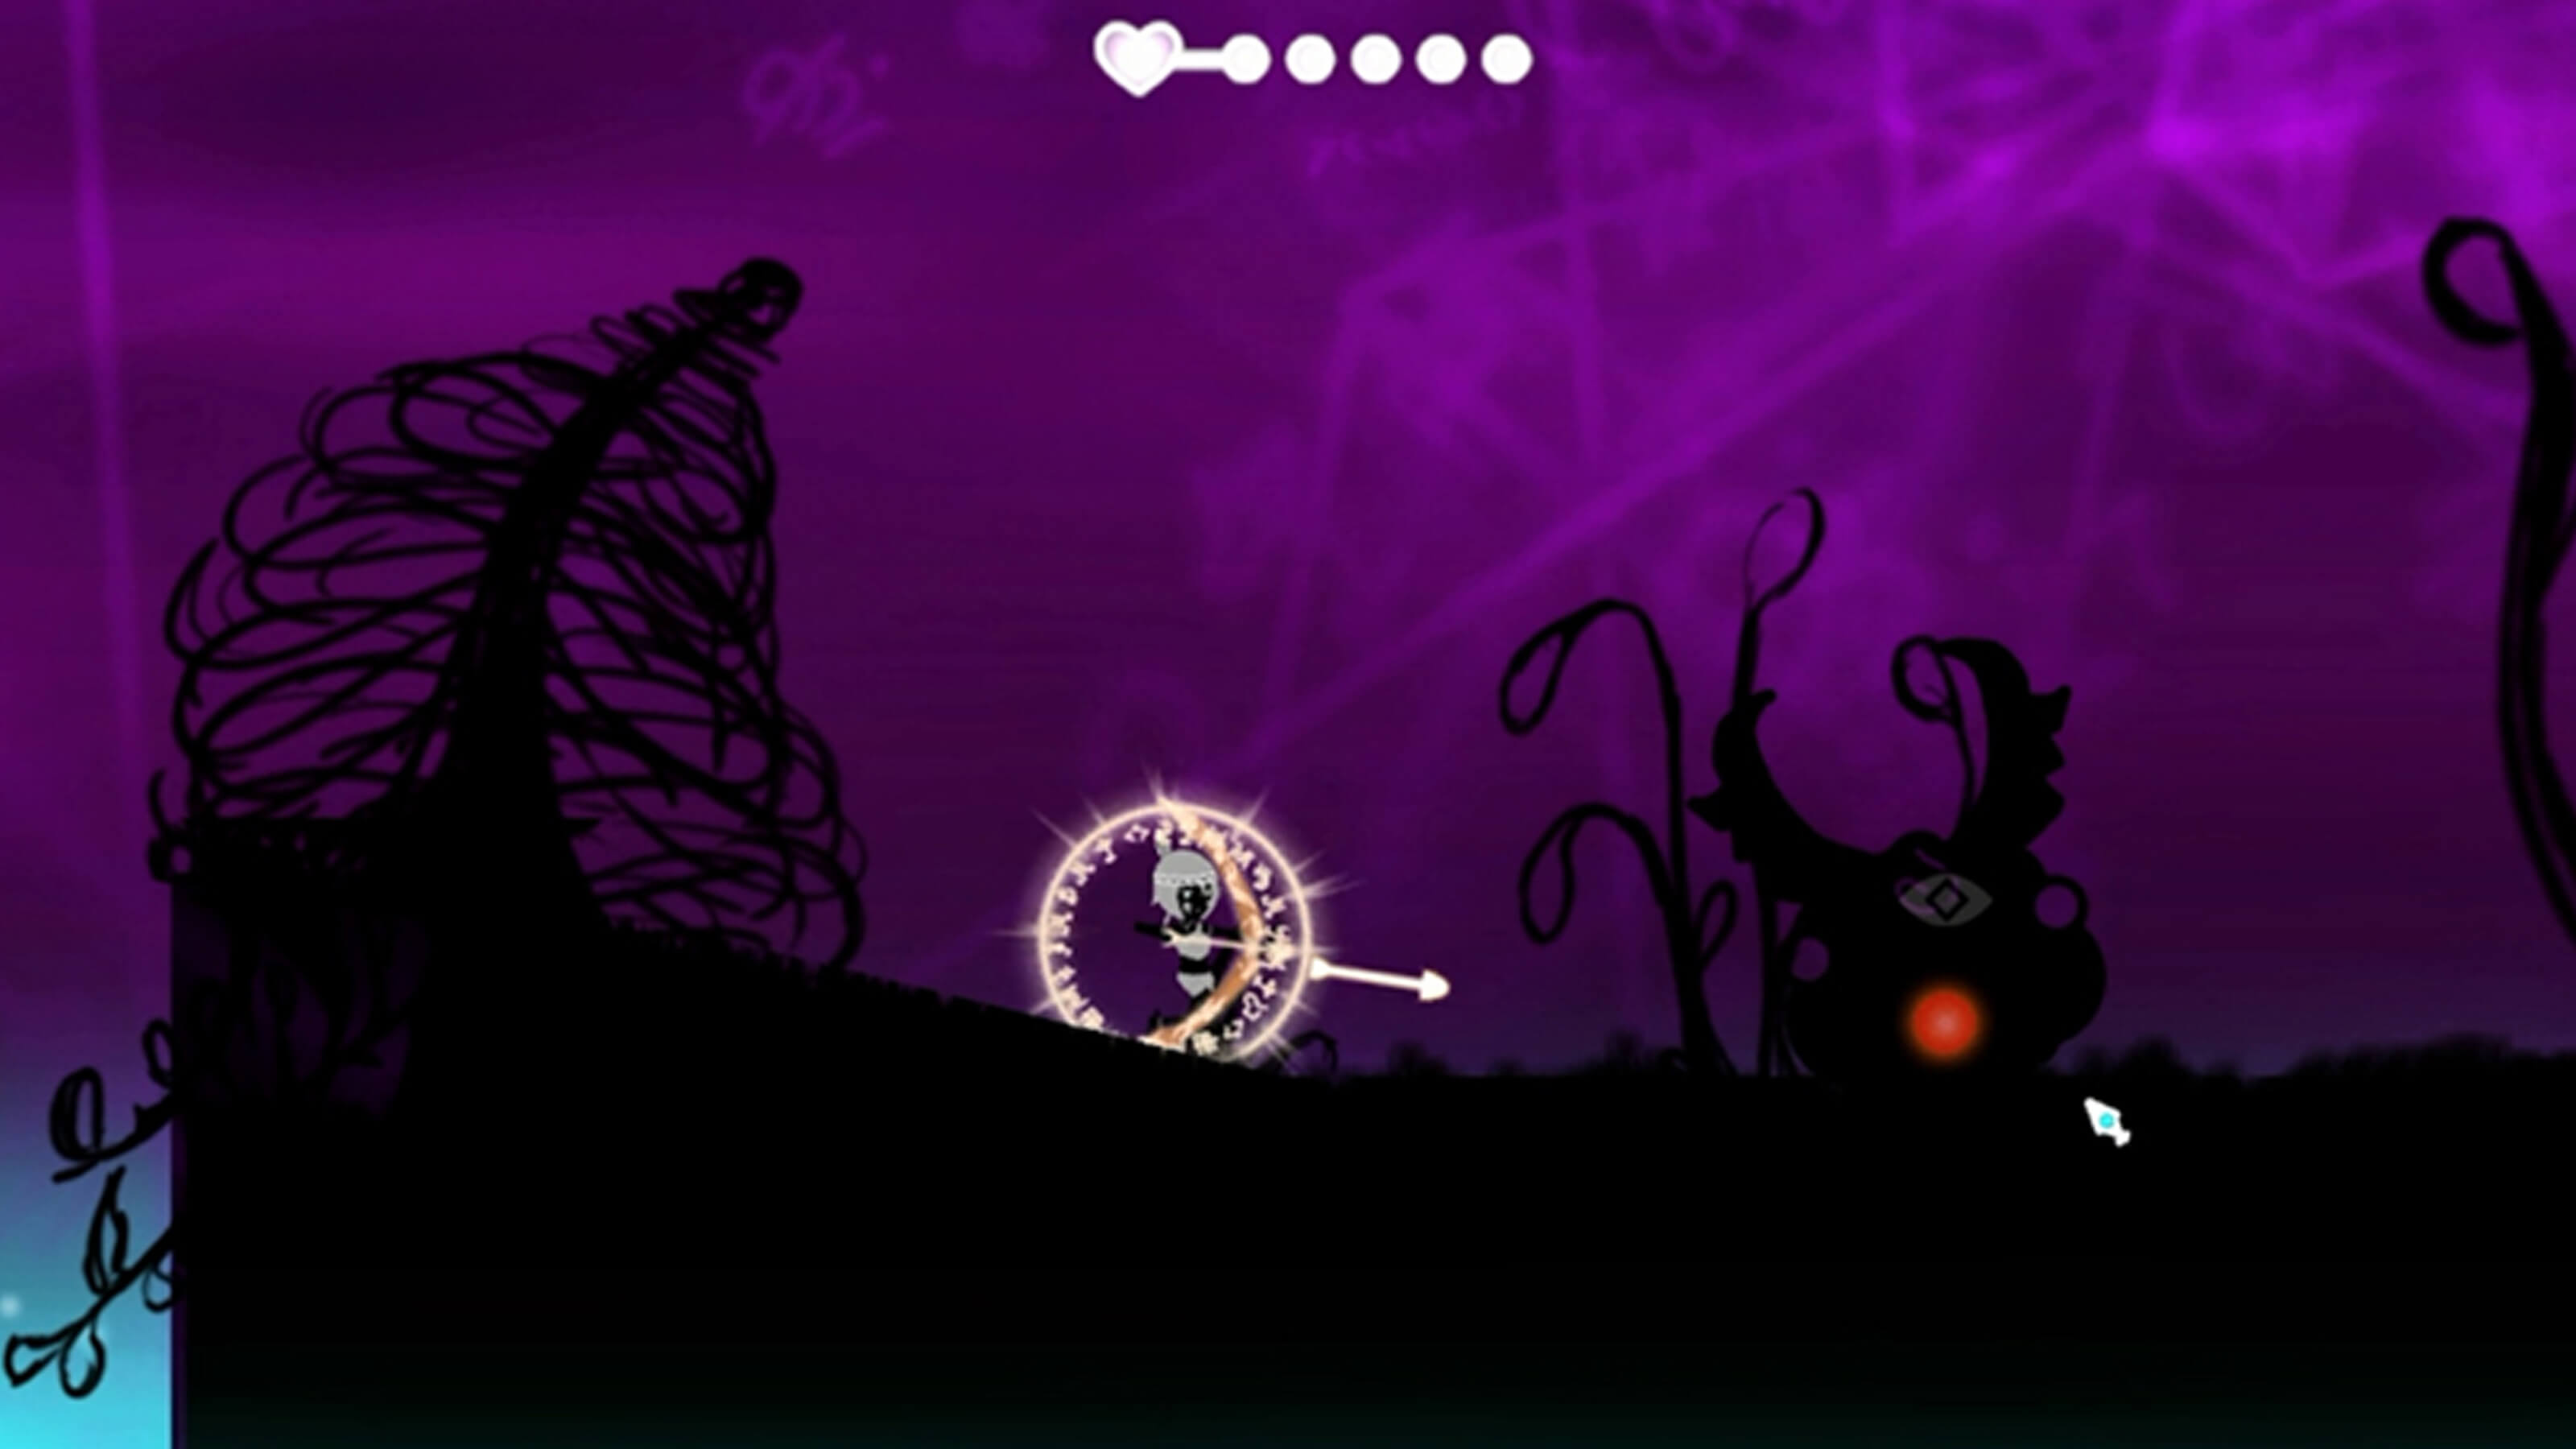 The player's character shoots a shining white arrow at an enemy. She is surrounded by a circle of glowing, white runes.